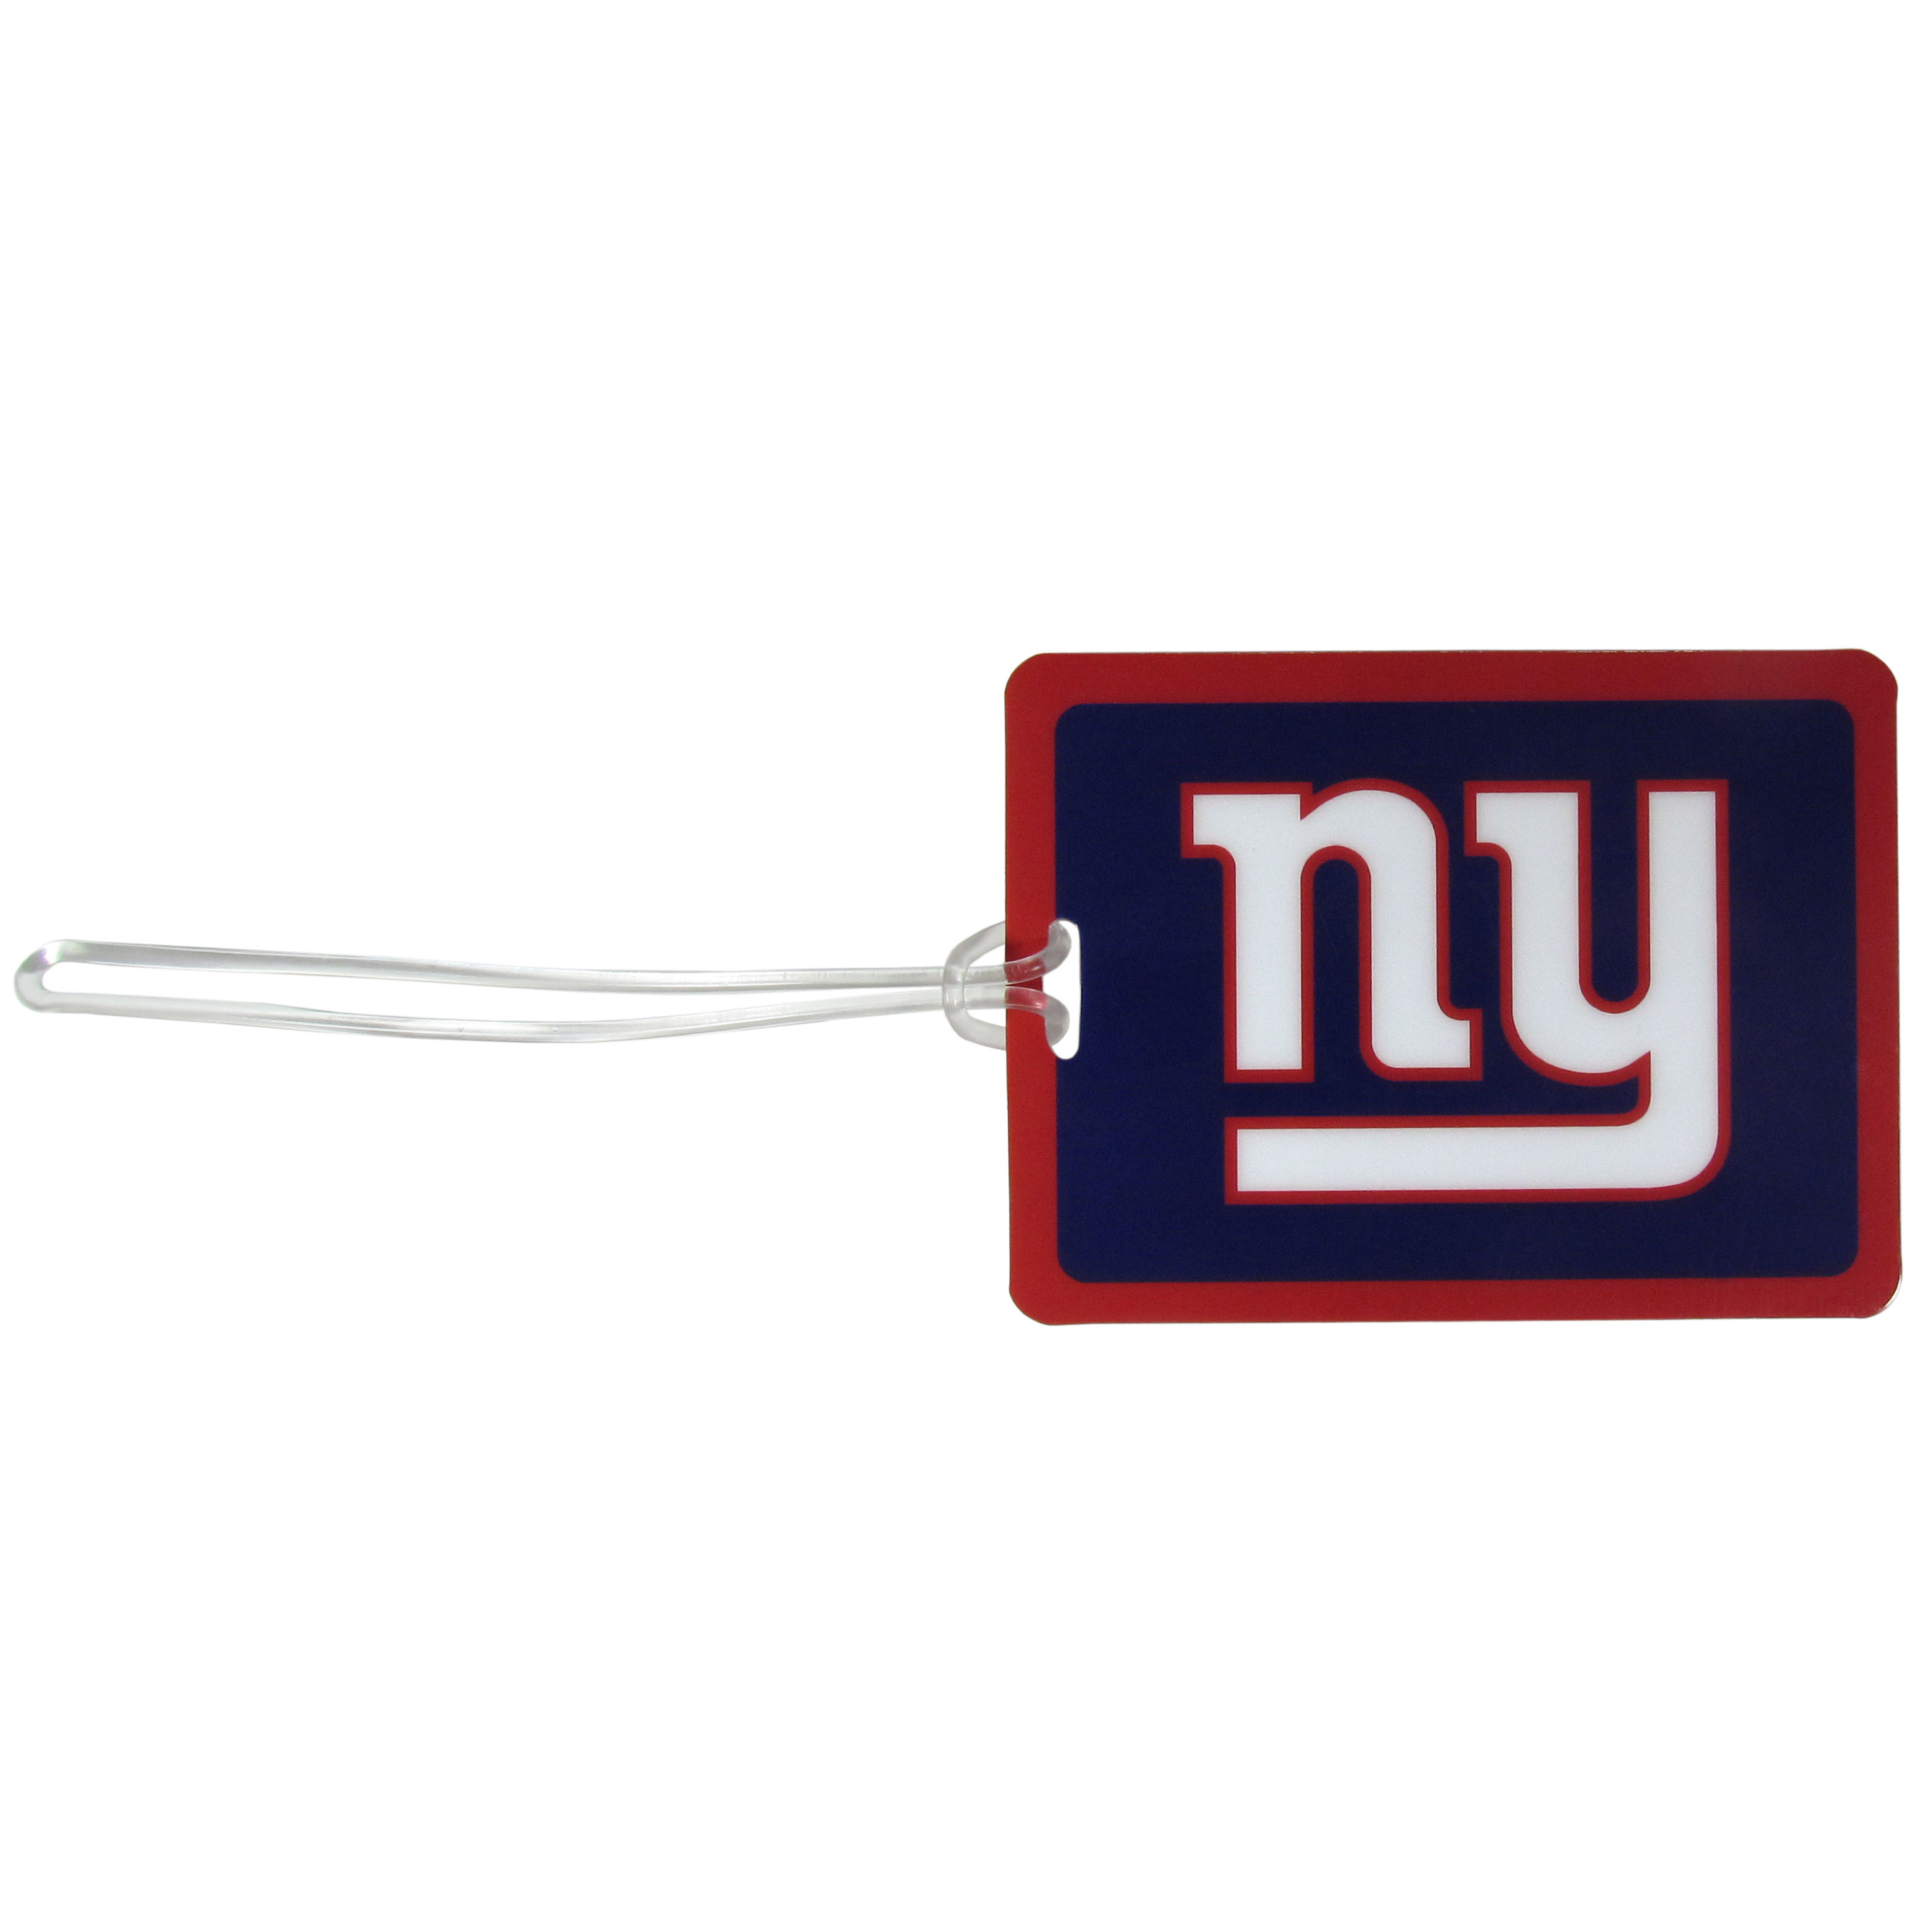 New York Giants Vinyl Luggage Tag - Tired of trying to spot your suitcase or bag in a sea of luggage? Try our large and colorful New York Giants luggage tag set. The tag is 4x3 inches and has a 5 inch cord to attach it easily to your bags, backpacks or luggage. The front of the tag features the team logo in a bright, team colored background and you can write you name, address and phone number on the back of the tag.